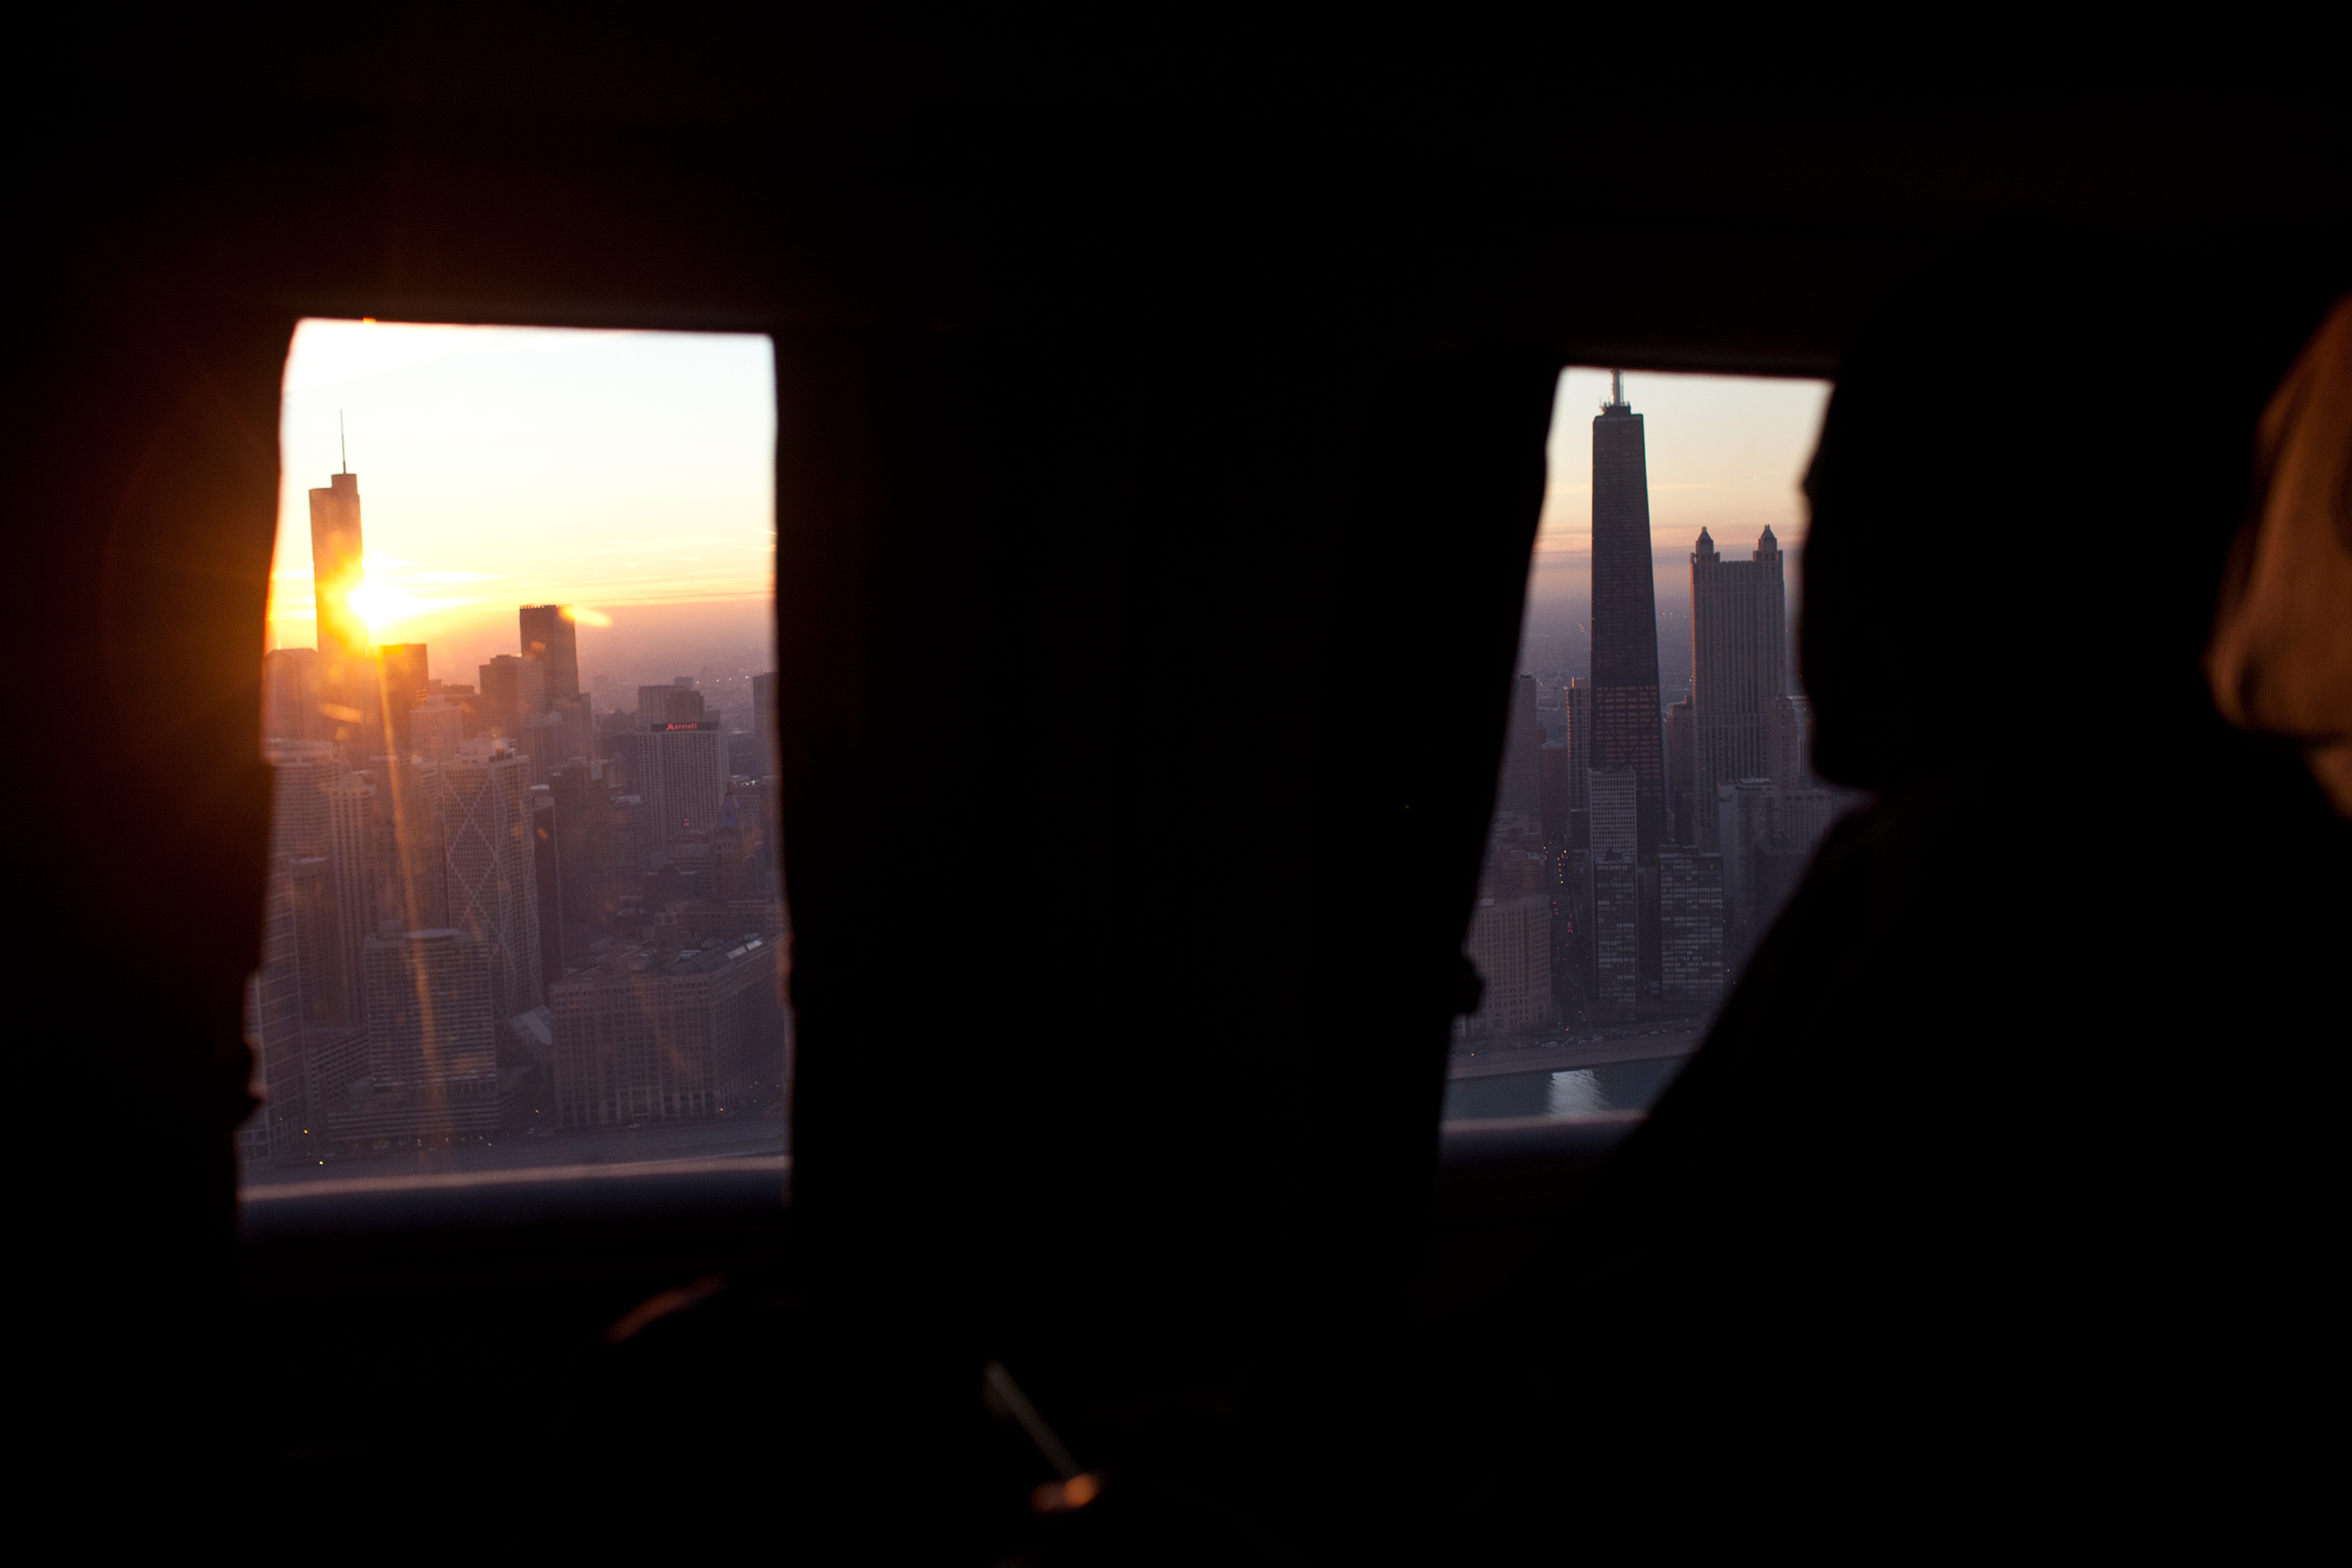 Illinois, Jan. 11, 2012. Viewing Chicago at sunset from Marine One. (Official White House Photo by Pete Souza)